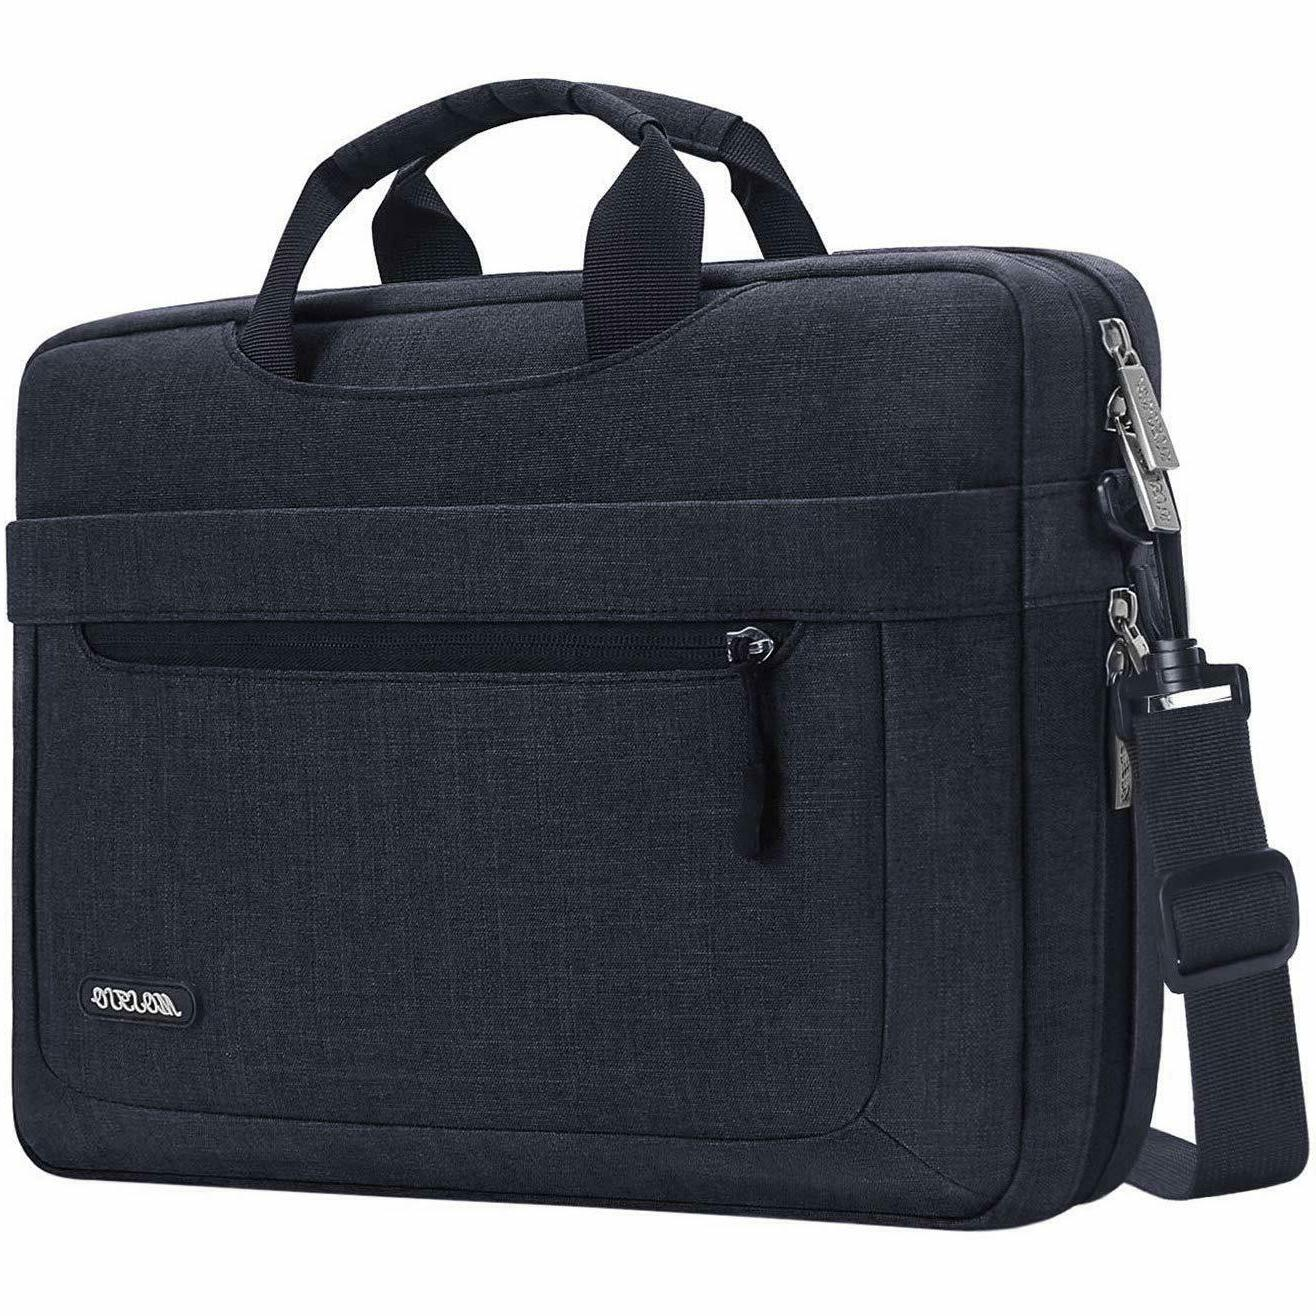 Laptop 15.6 17 inch Bag for Dell HP Chromebook